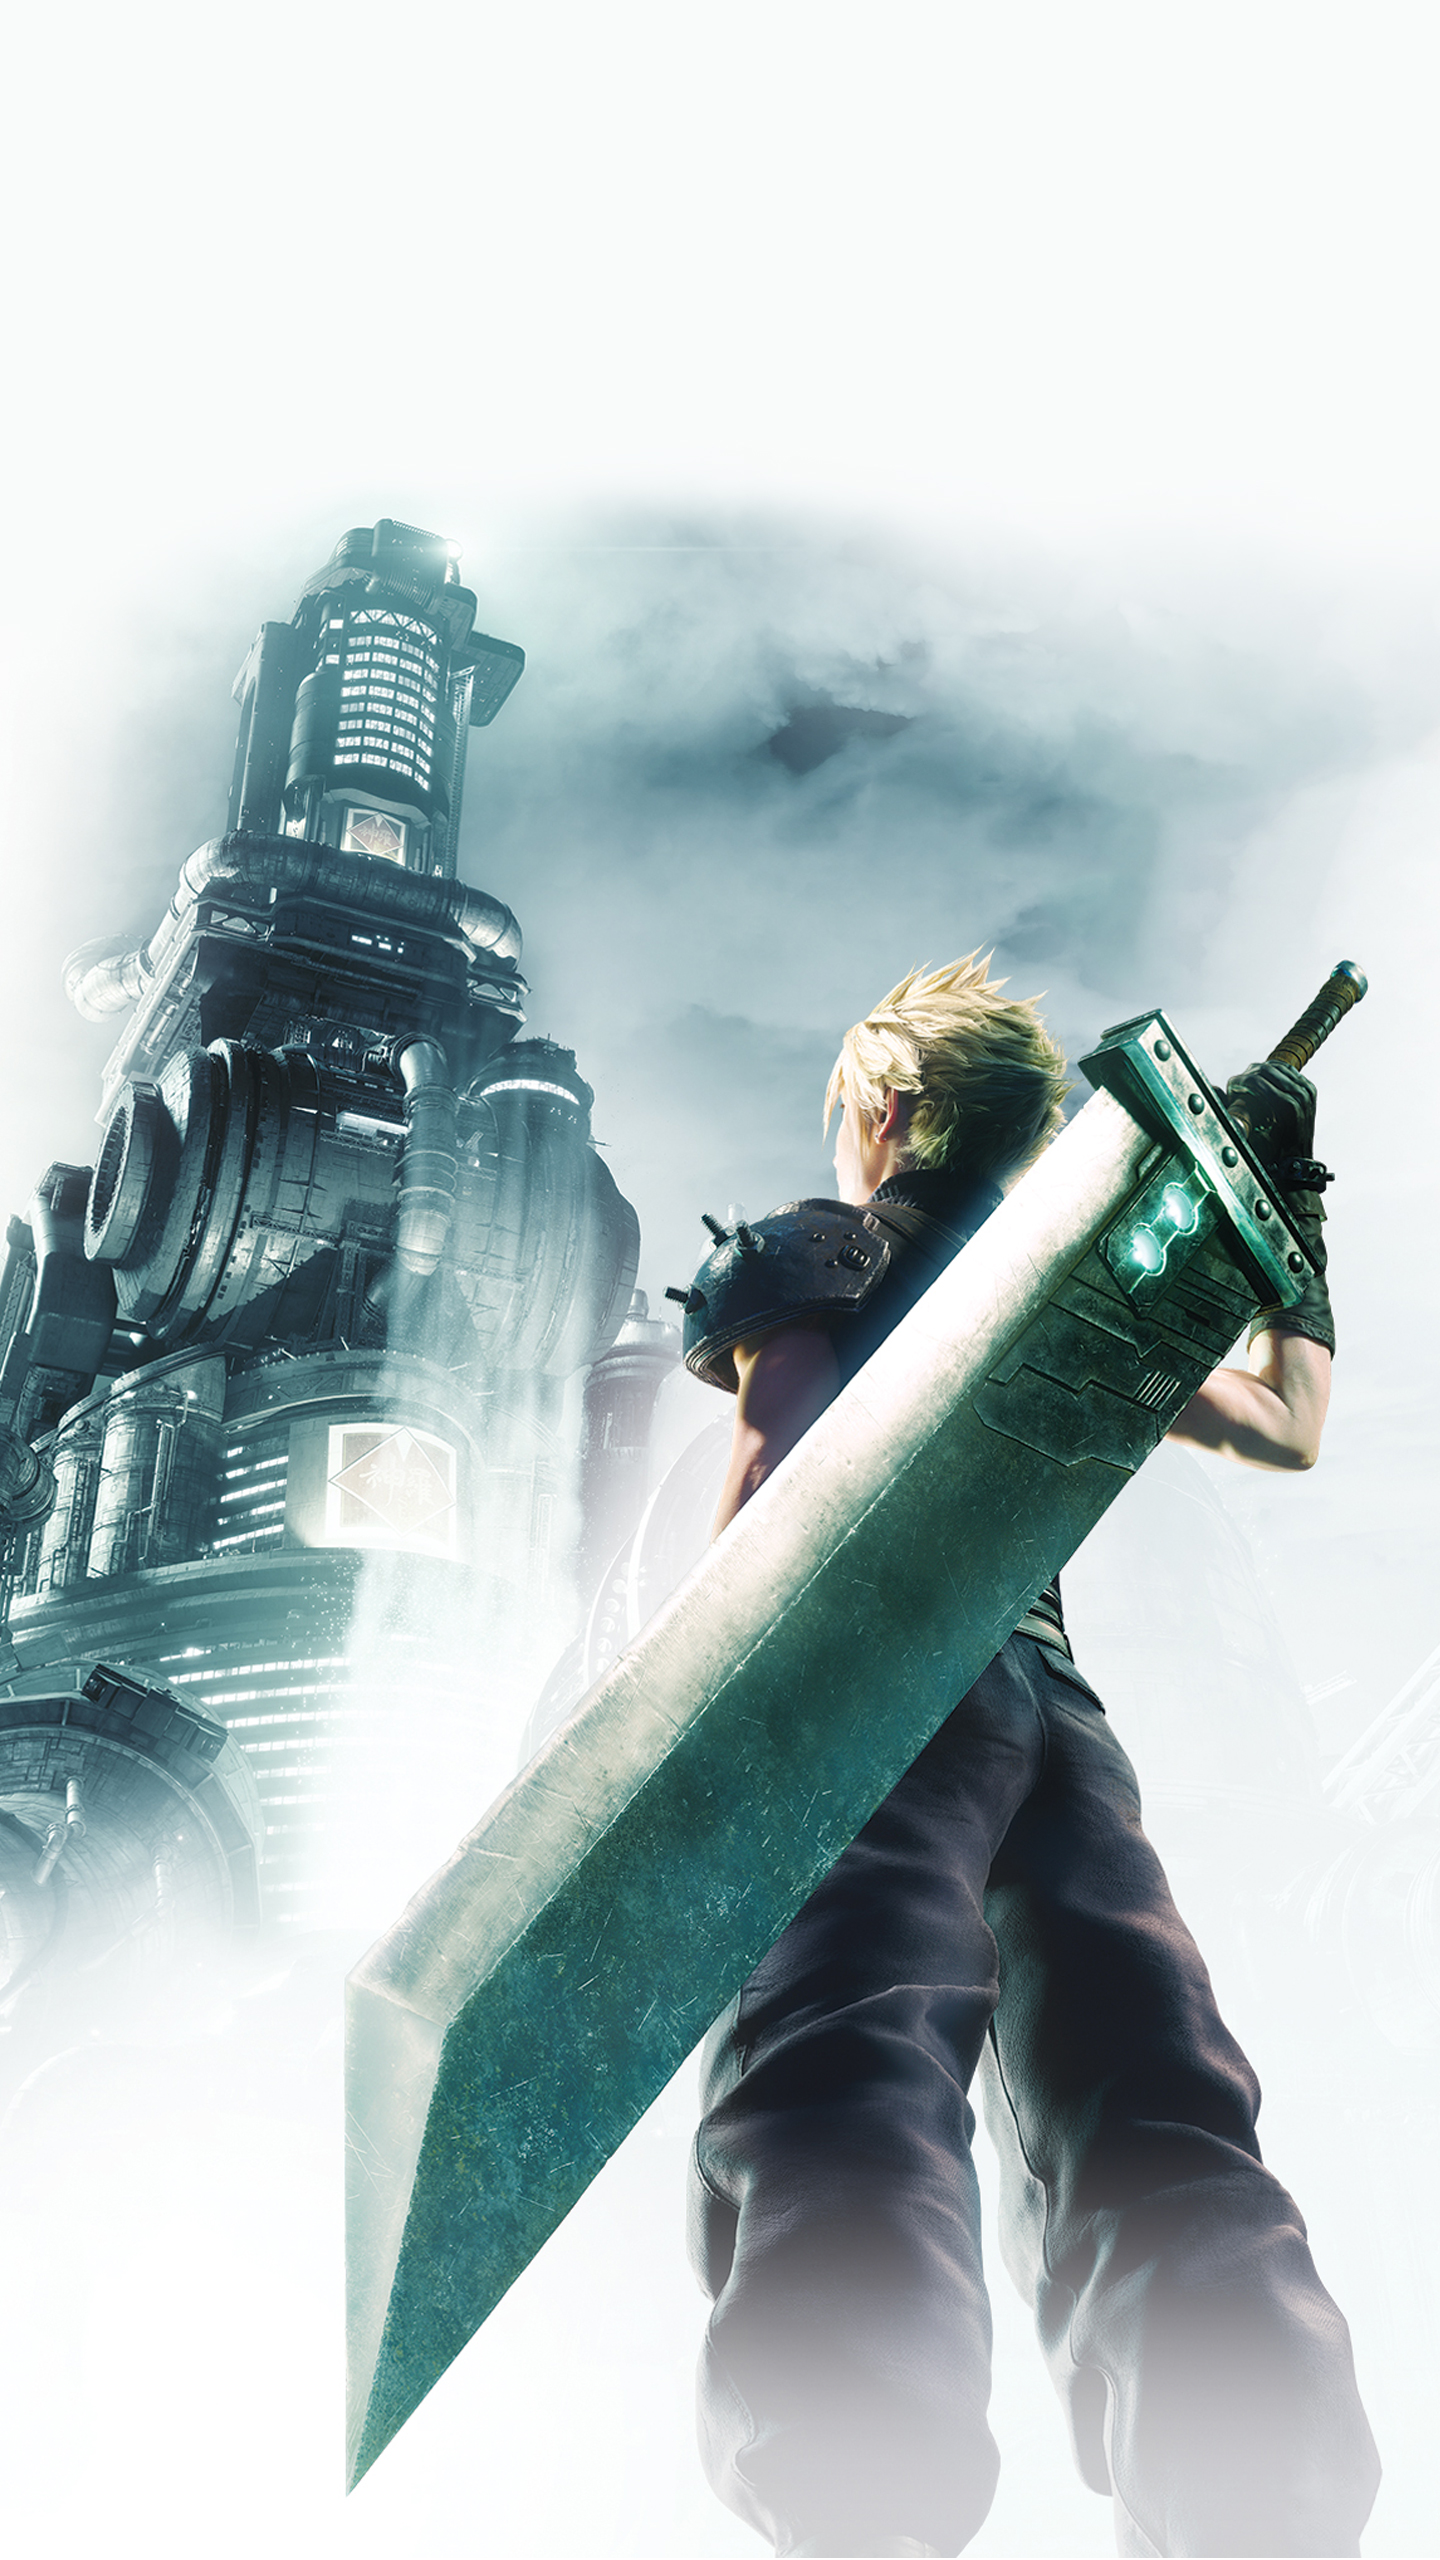 Final Fantasy VII Remake Cover Wallpaper   Cat with Monocle